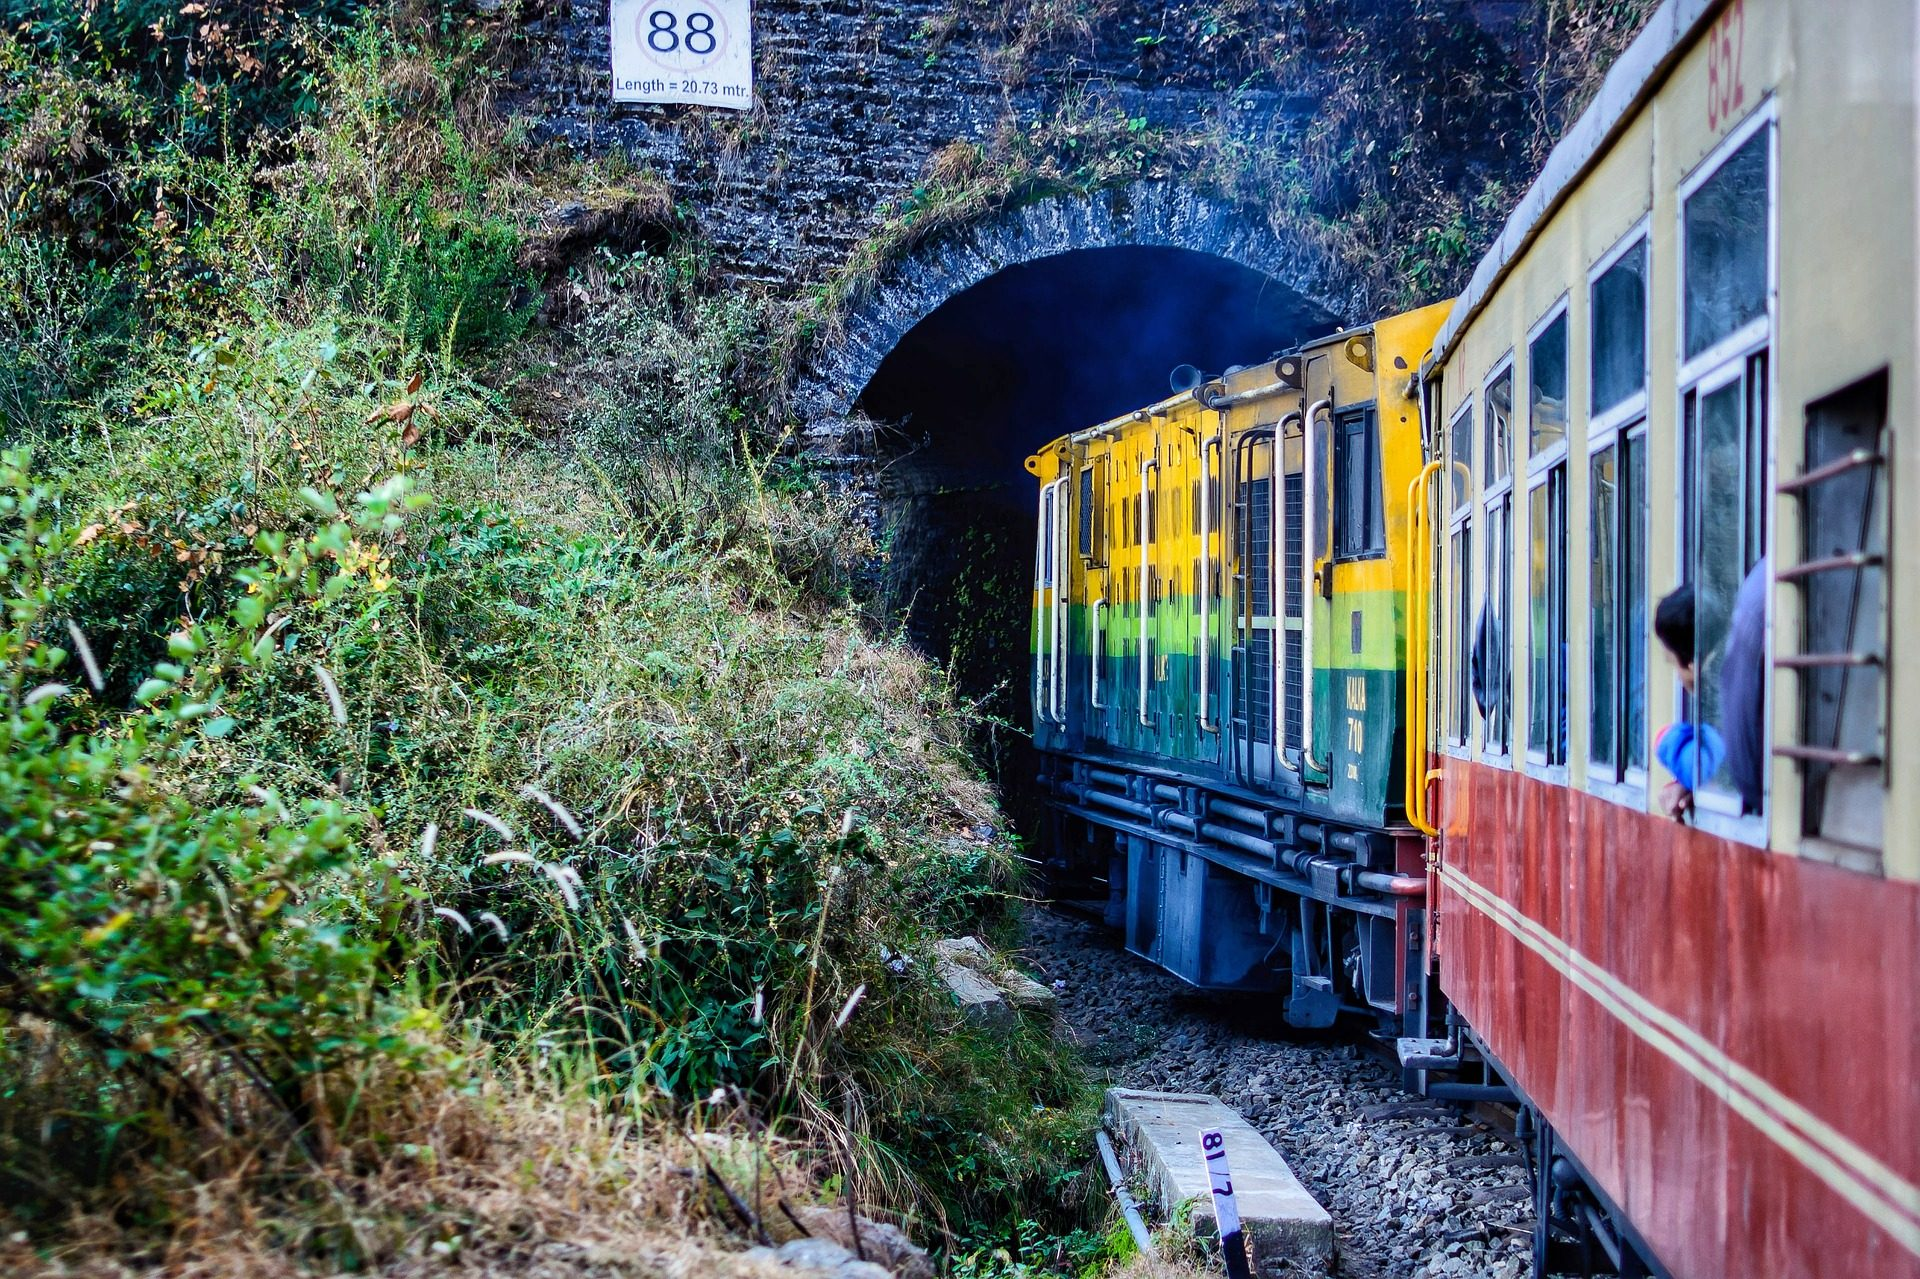 Zug, Passagiere, Tunnel, Reisen, Waggons, Tourismus - Wallpaper HD - Prof.-falken.com